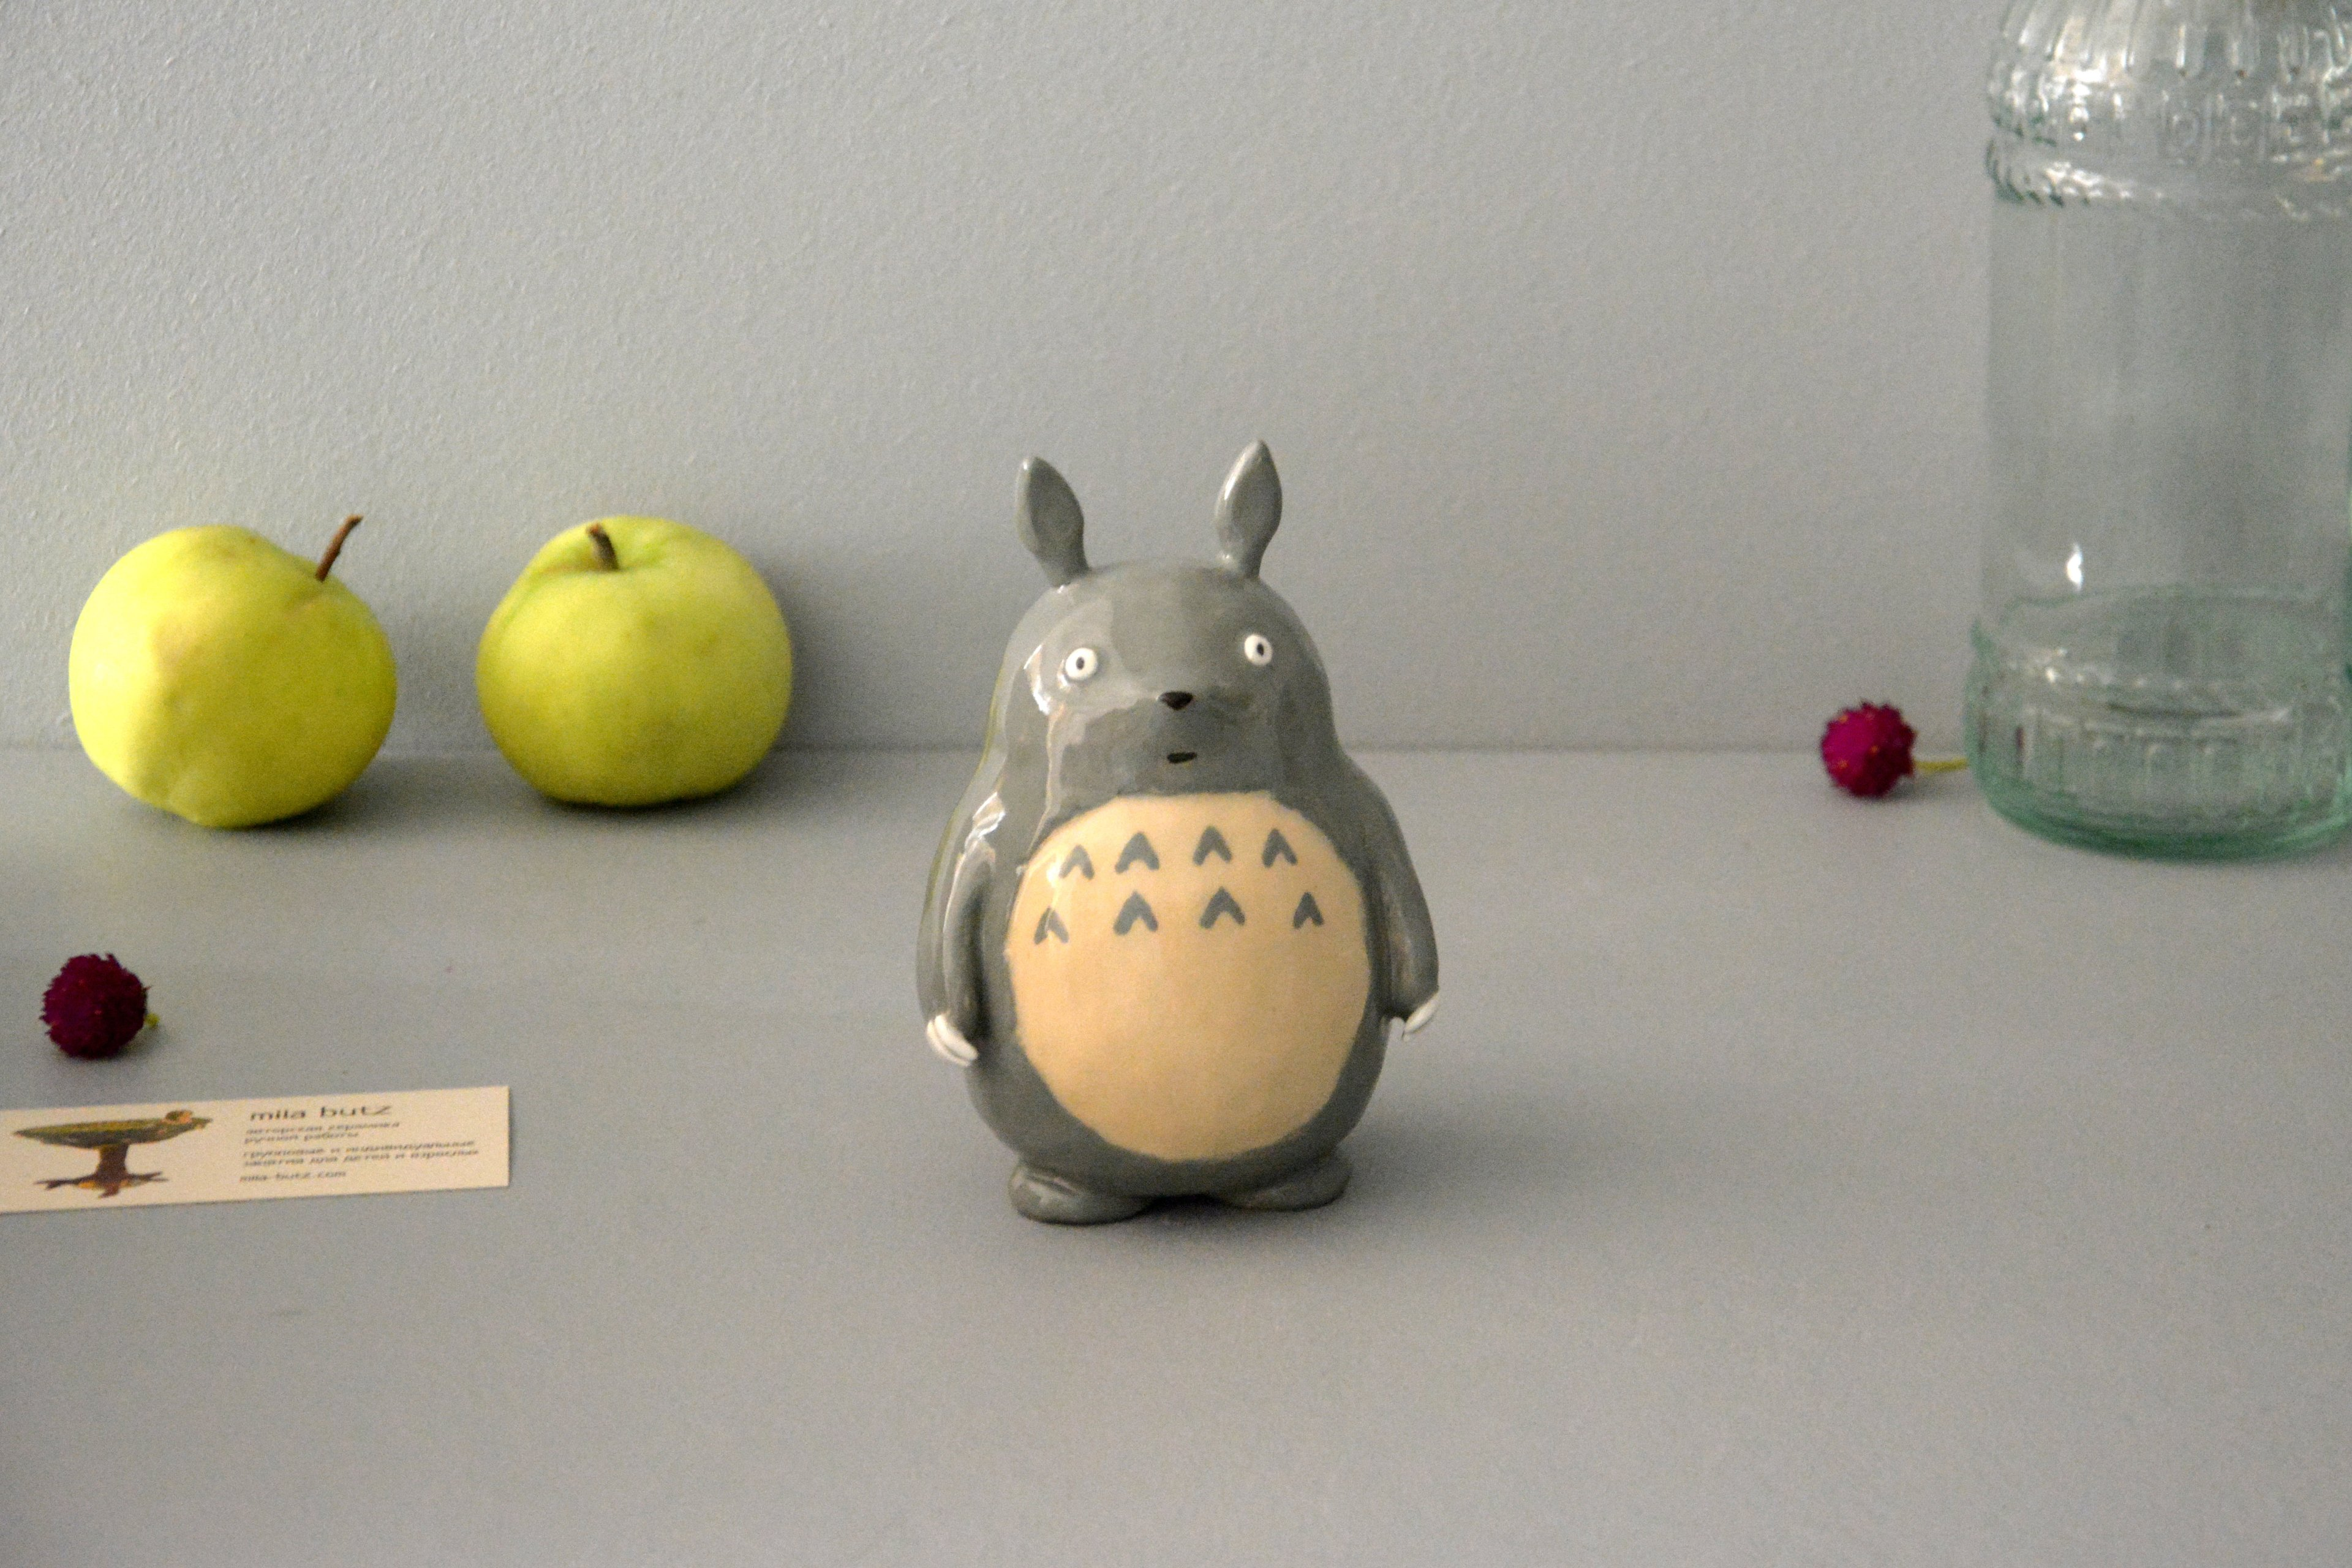 Ceramic figurine Totoro, height - 13 cm, photo 4 of 6.